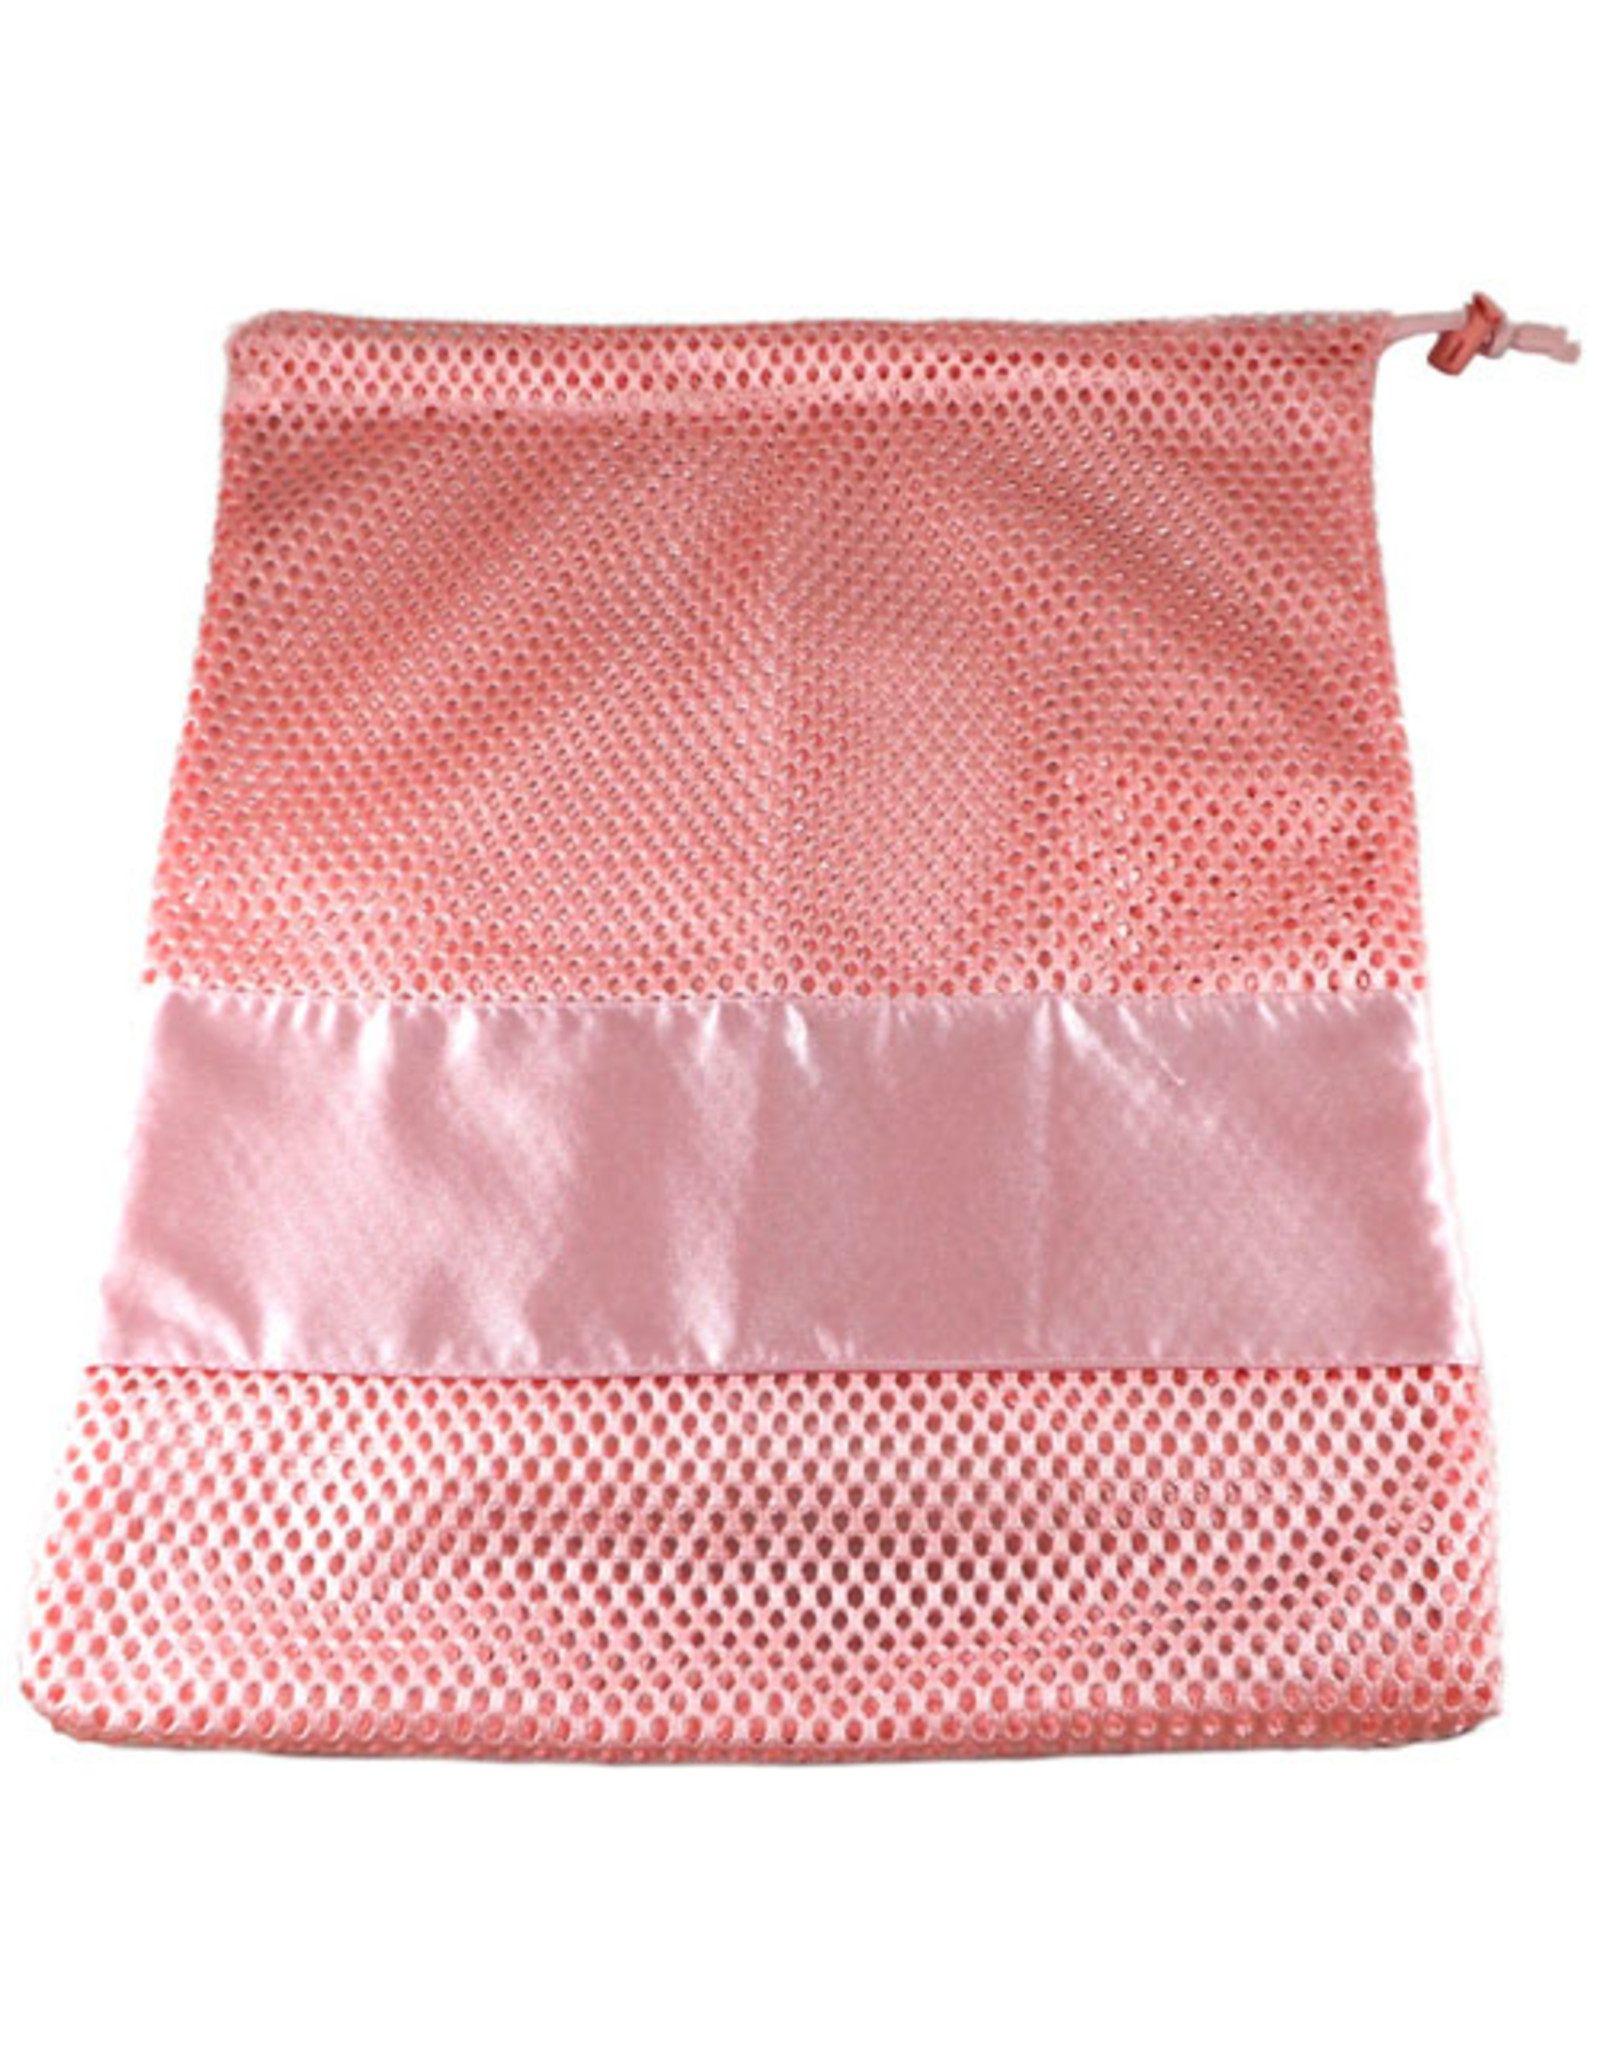 Pillows for Pointes Mesh Pointe Shoe Pillowcase